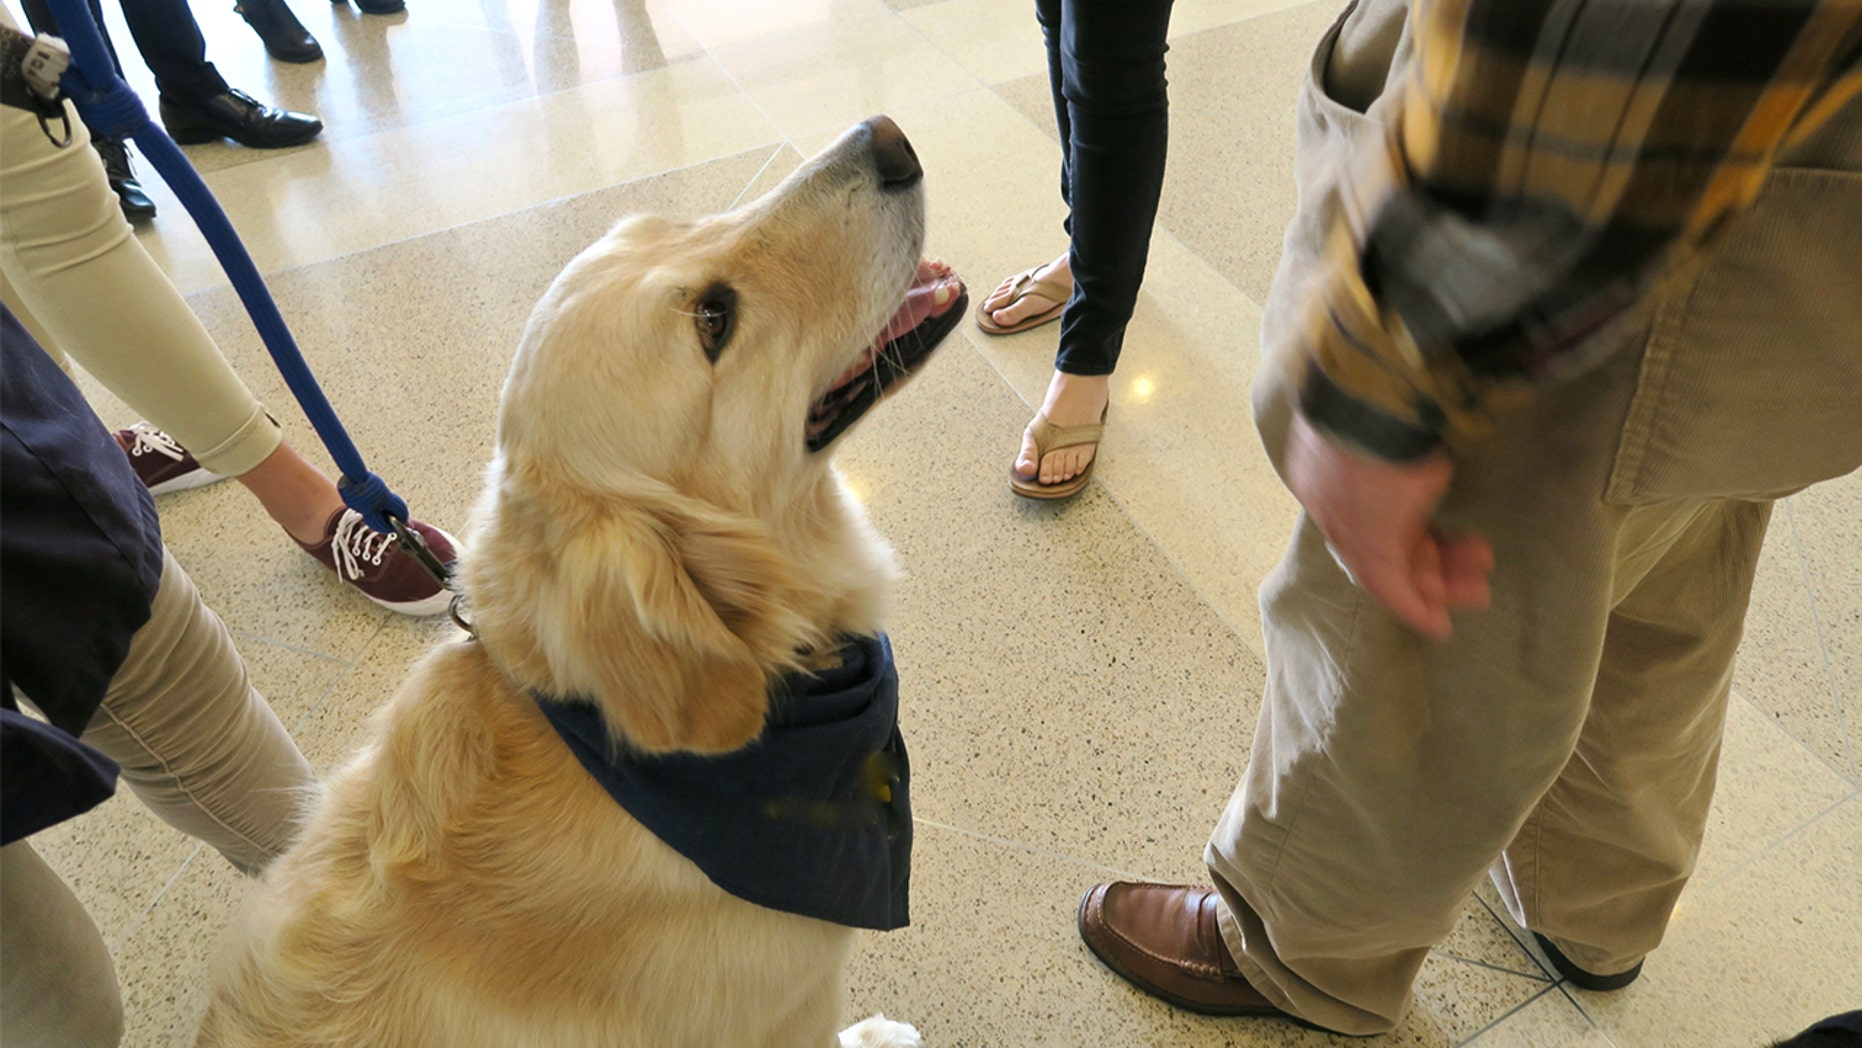 Coming soon to an airport near you: therapy dogs.